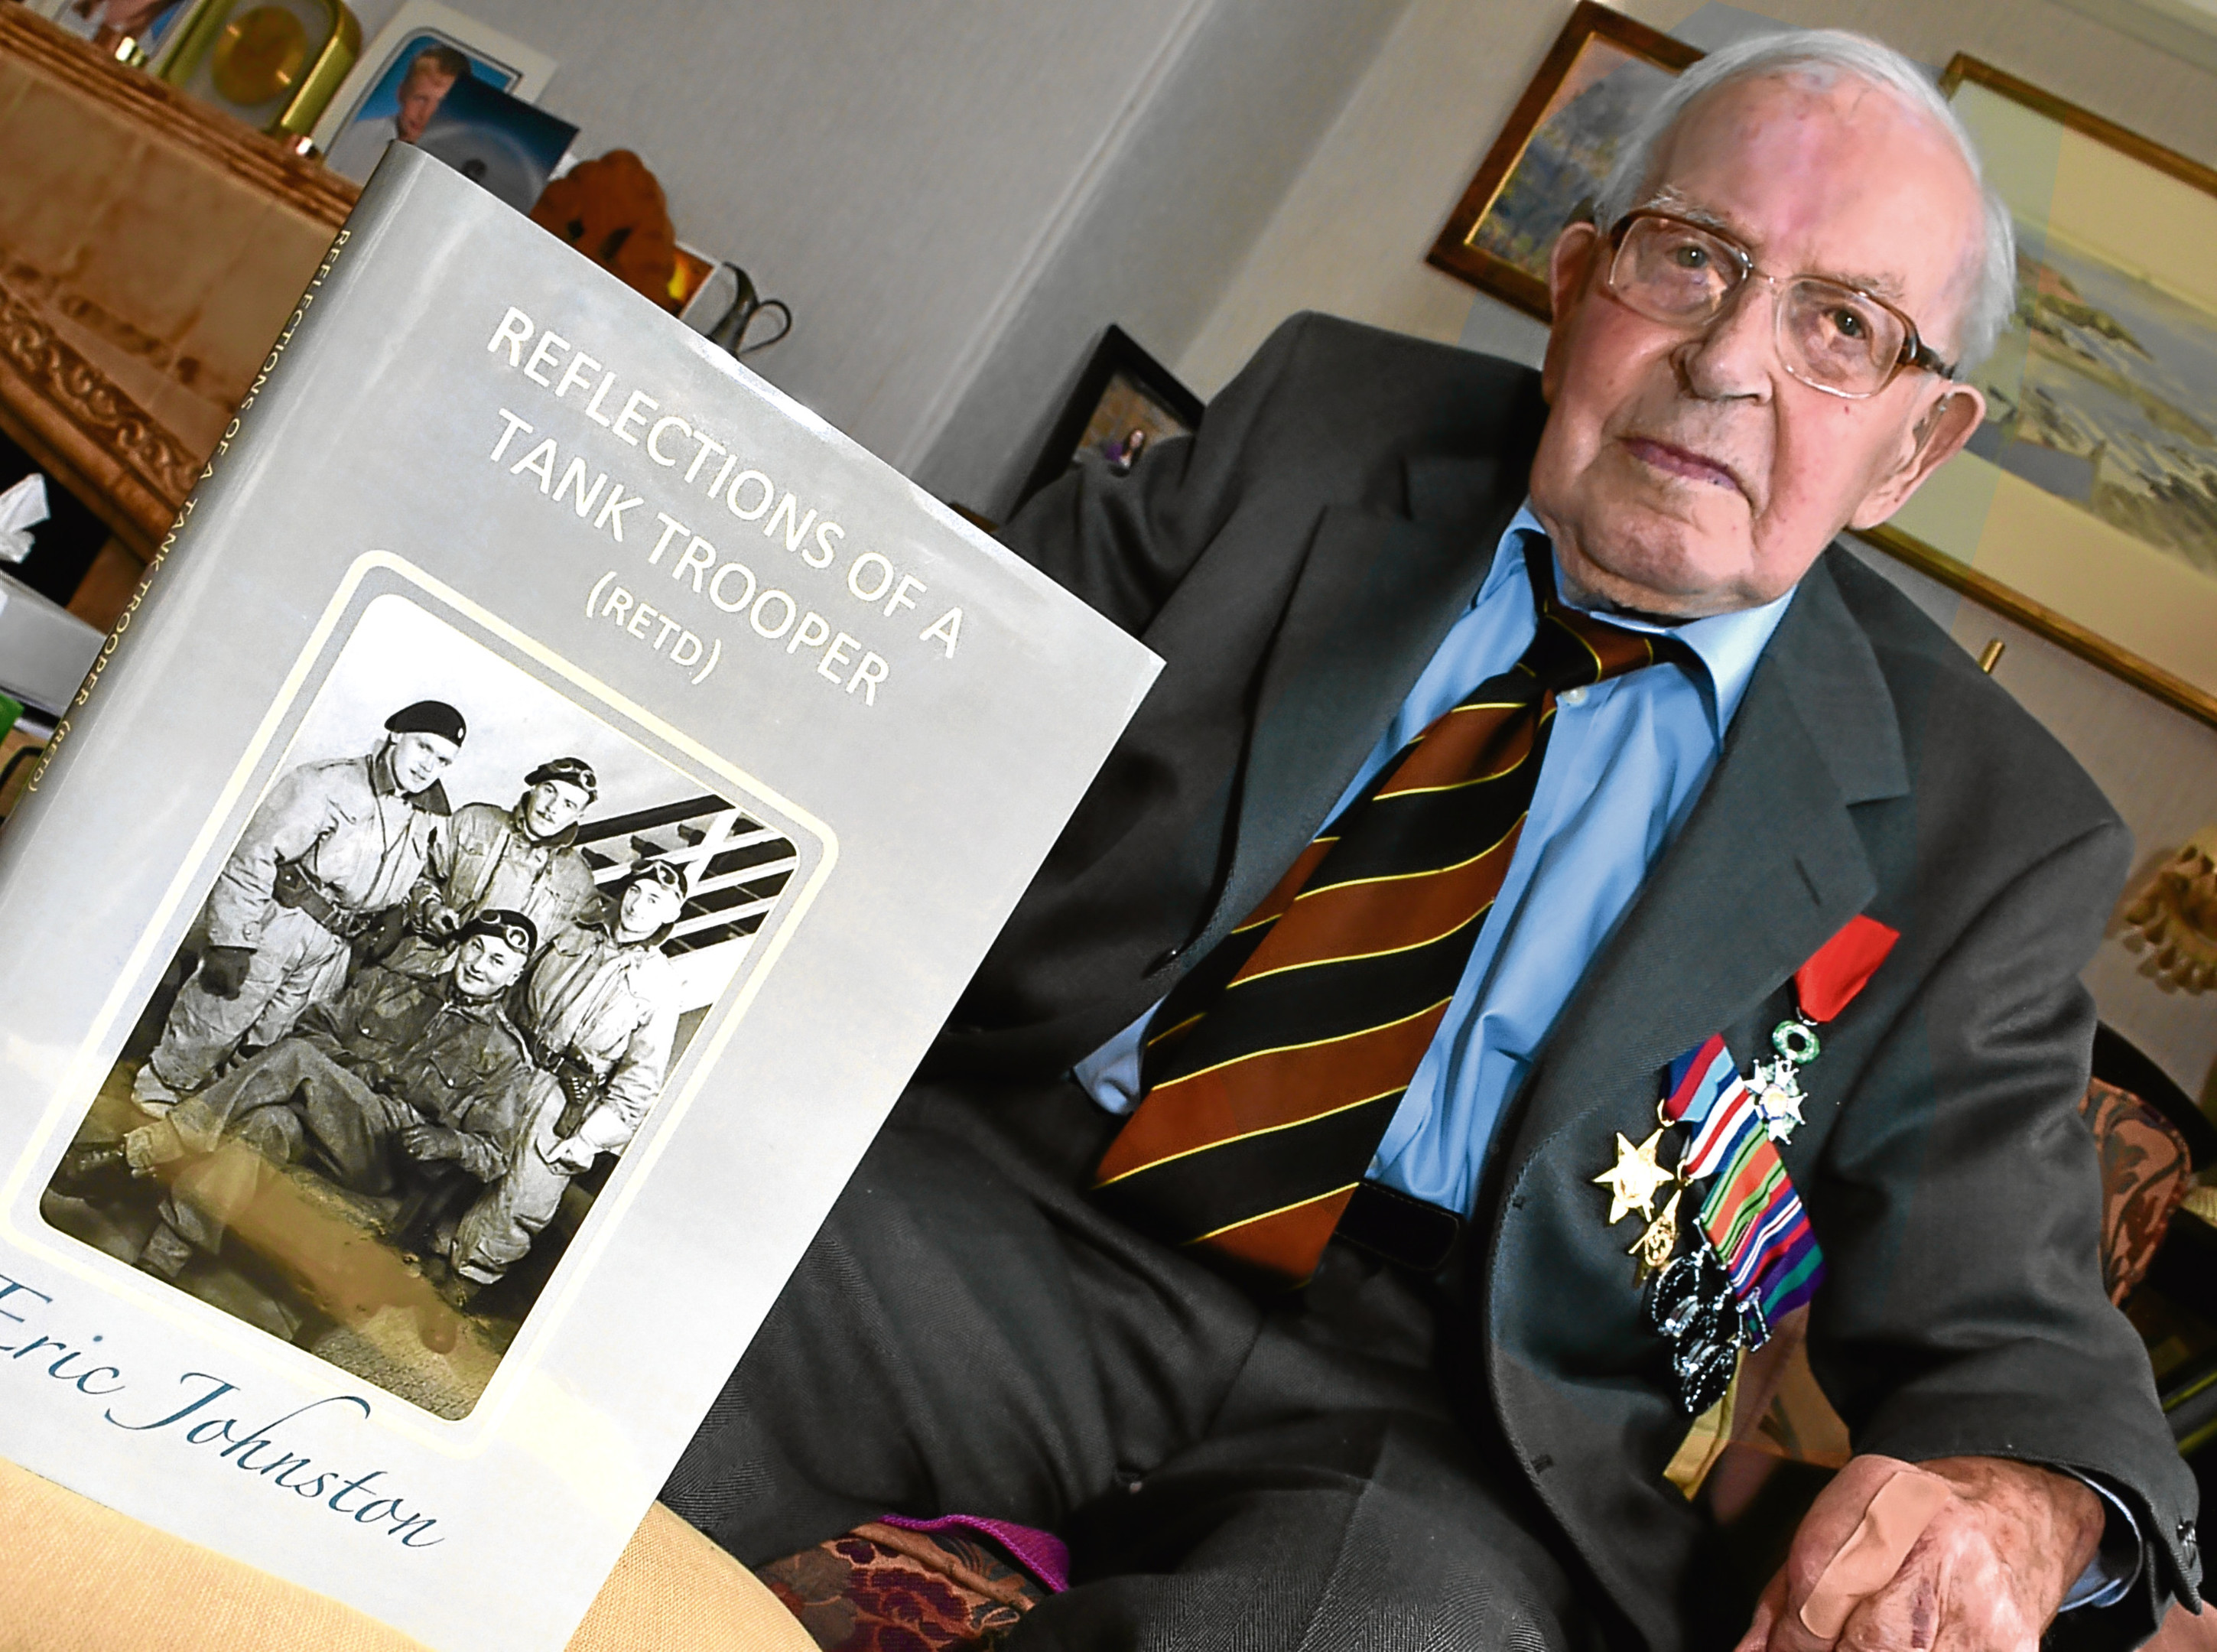 Eric Johnston has just published his book about his wartime experiences  at the age of 94.